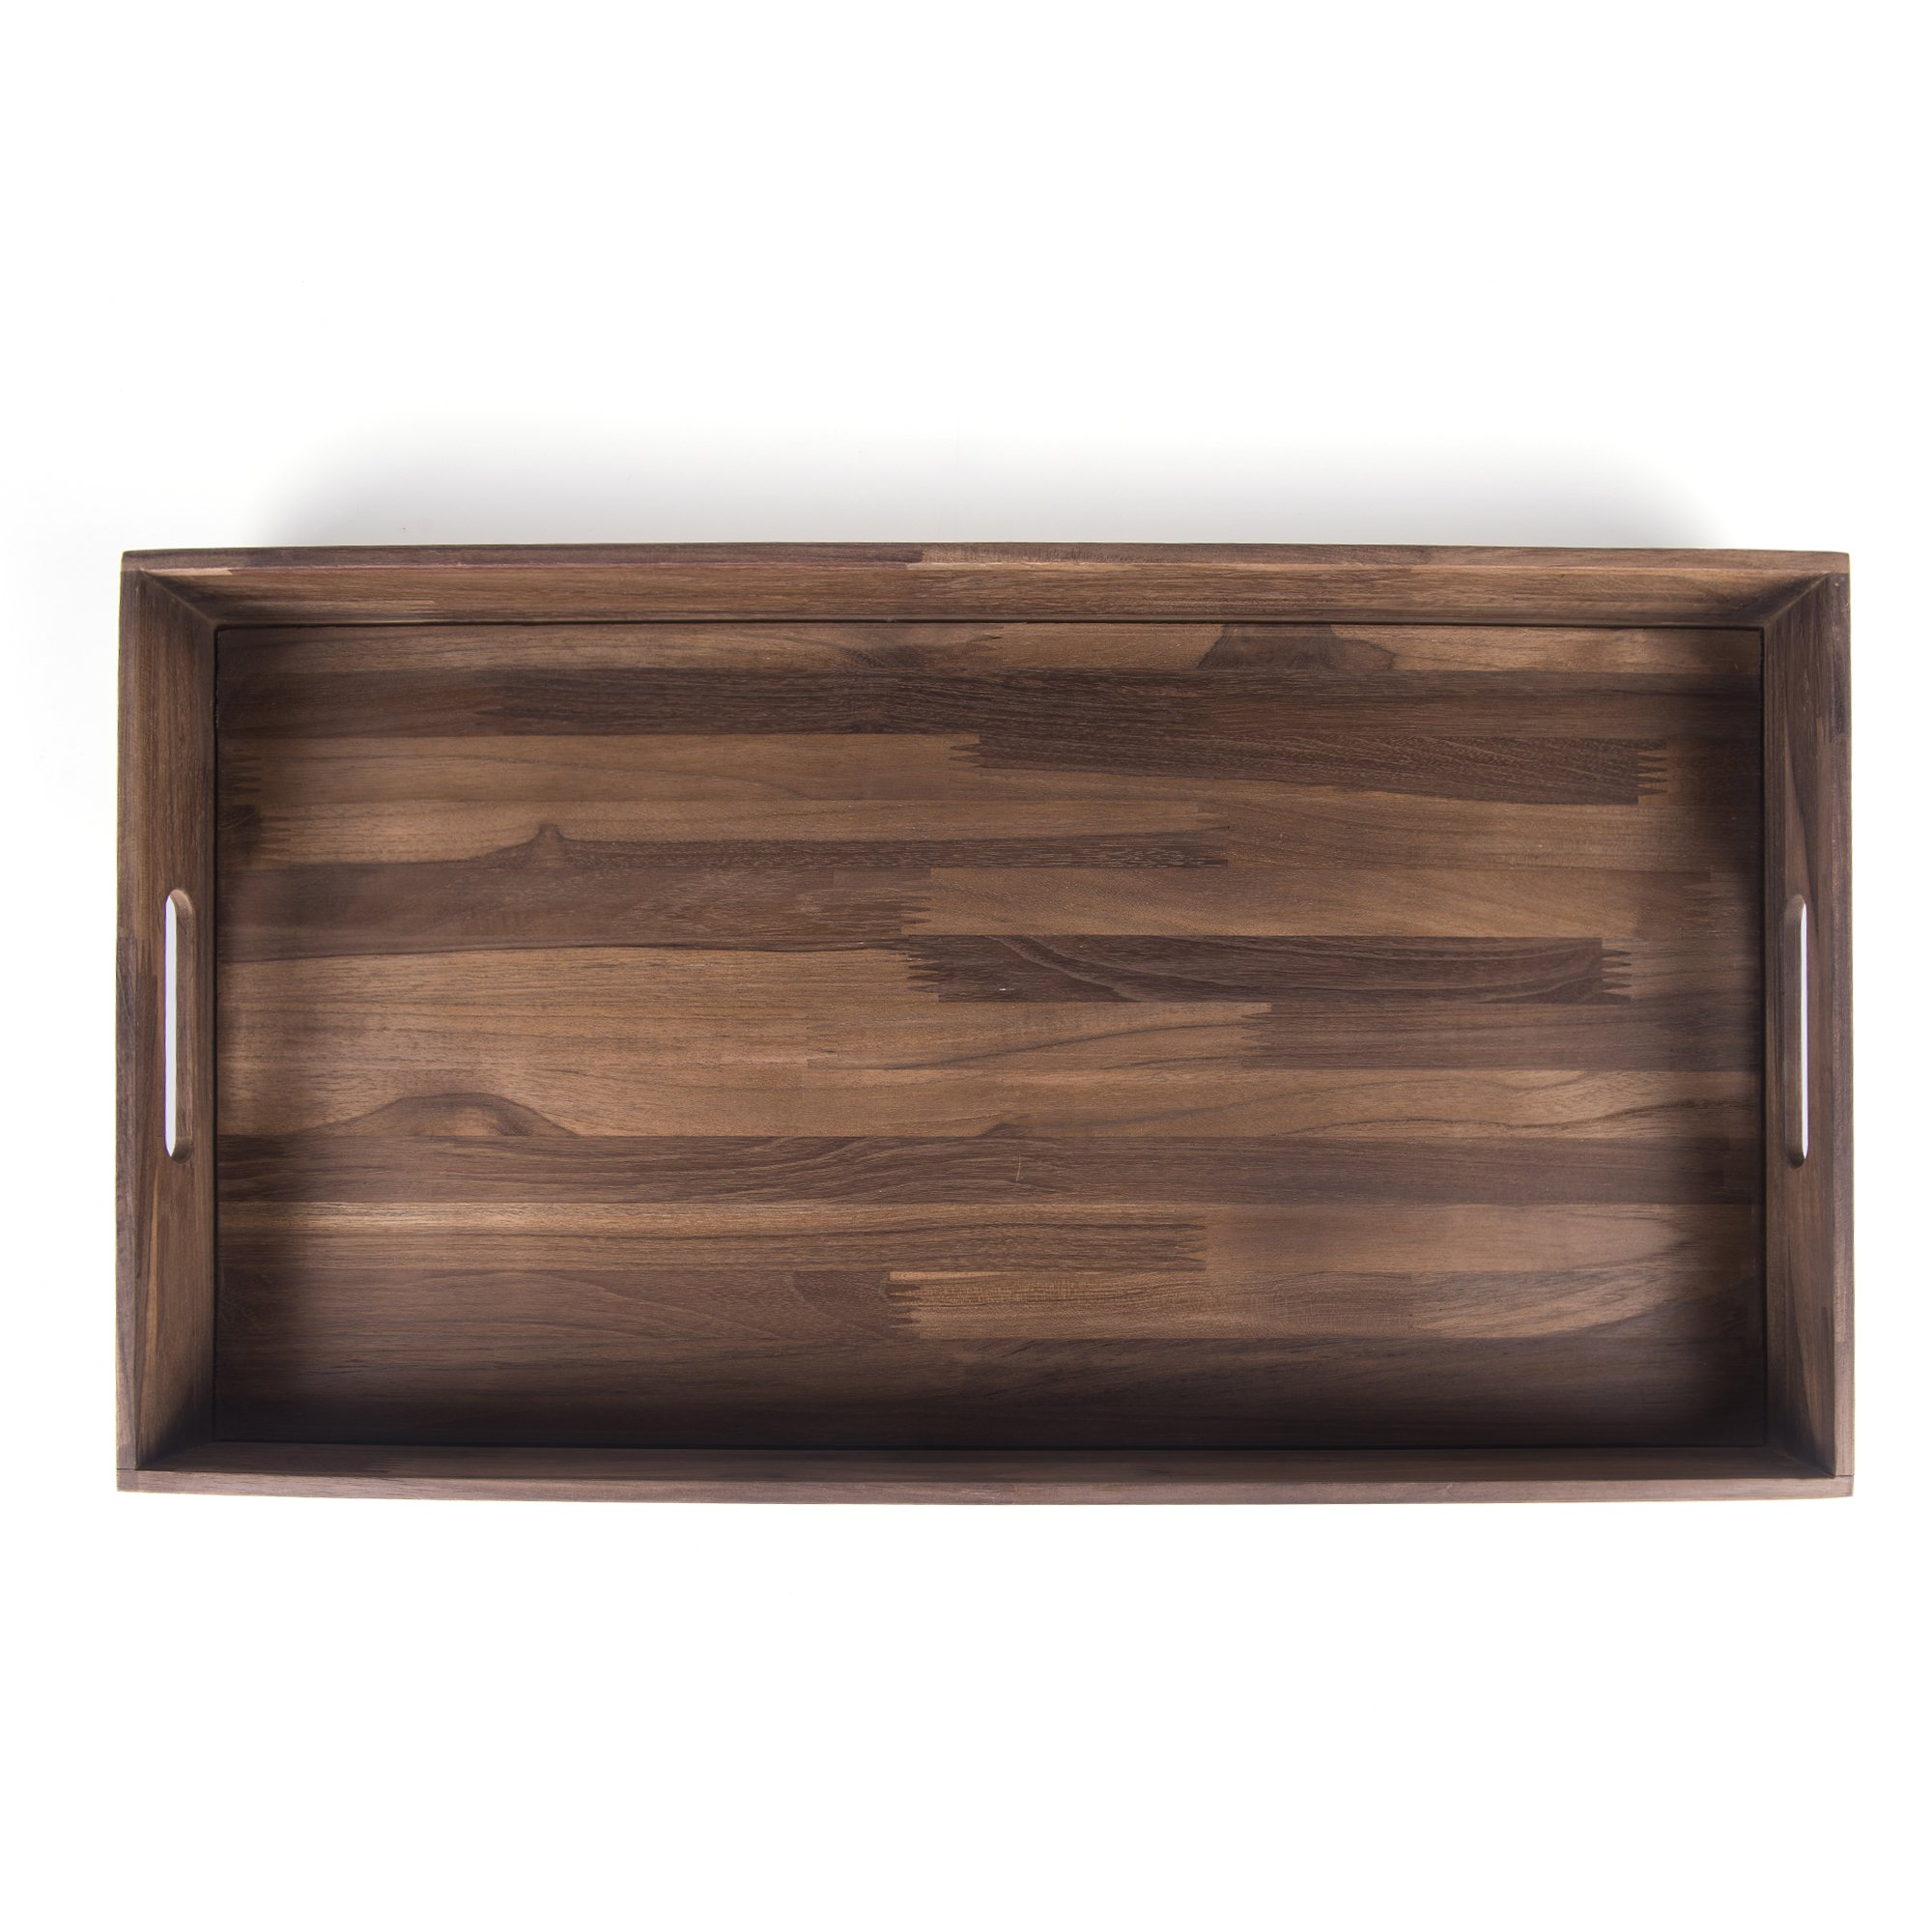 Glitz Star Square Ottoman Tray Teak Wood Serving Tray, Extra Large(24 x 13 inch)